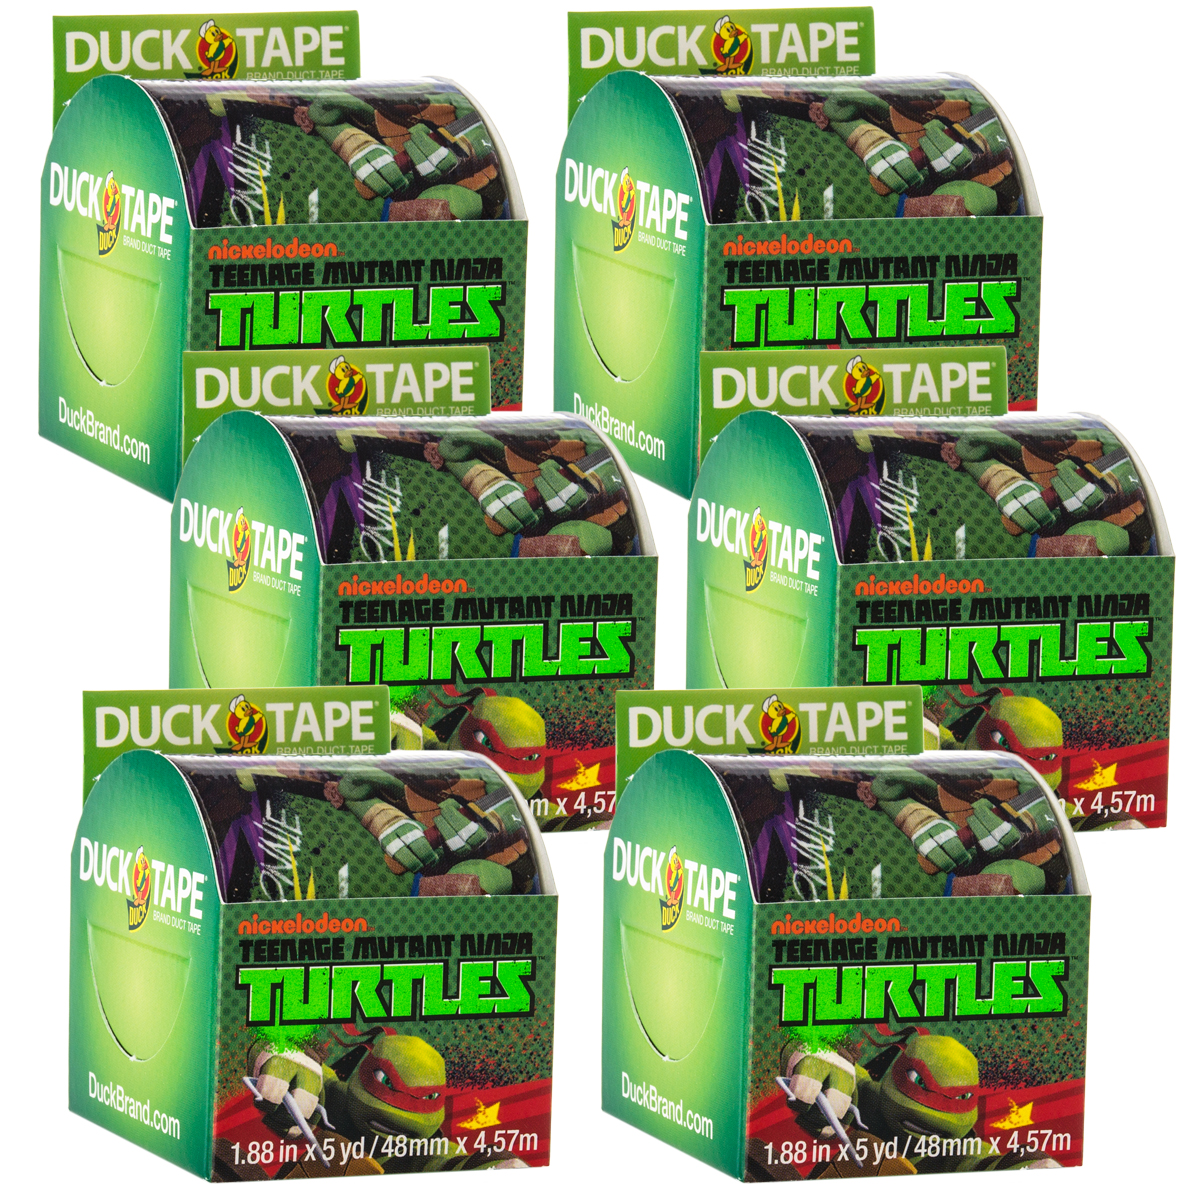 Duck Brand 6 Rolls Teenage Mutant Ninja Turtles Duct Tape Cartoon Crafts 30yds